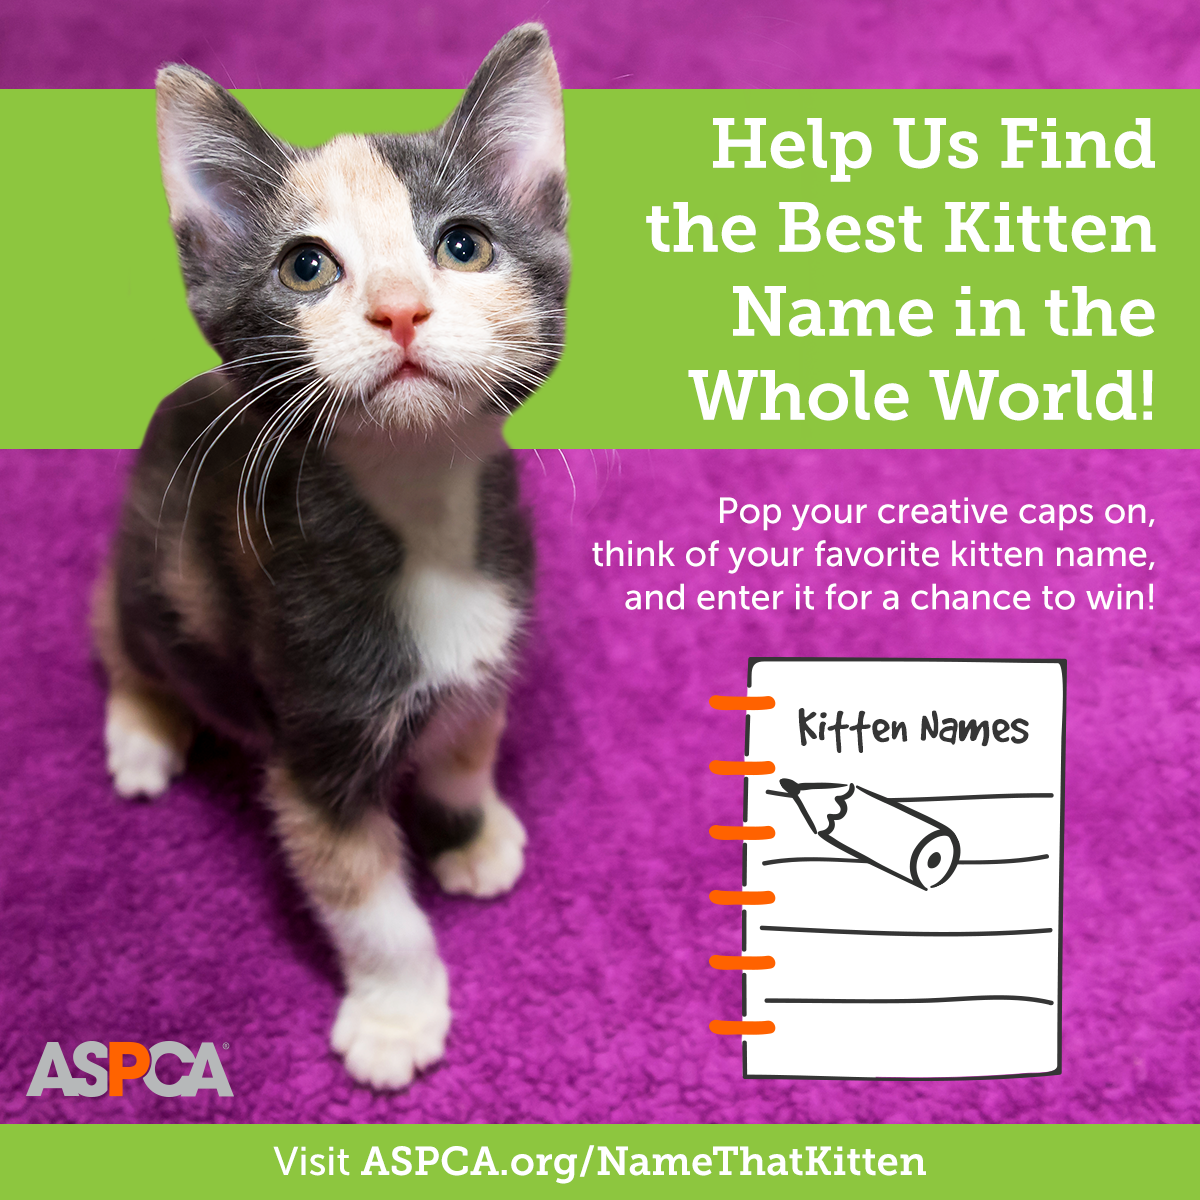 Cast Your Vote for the BEST Kitten Name in the World